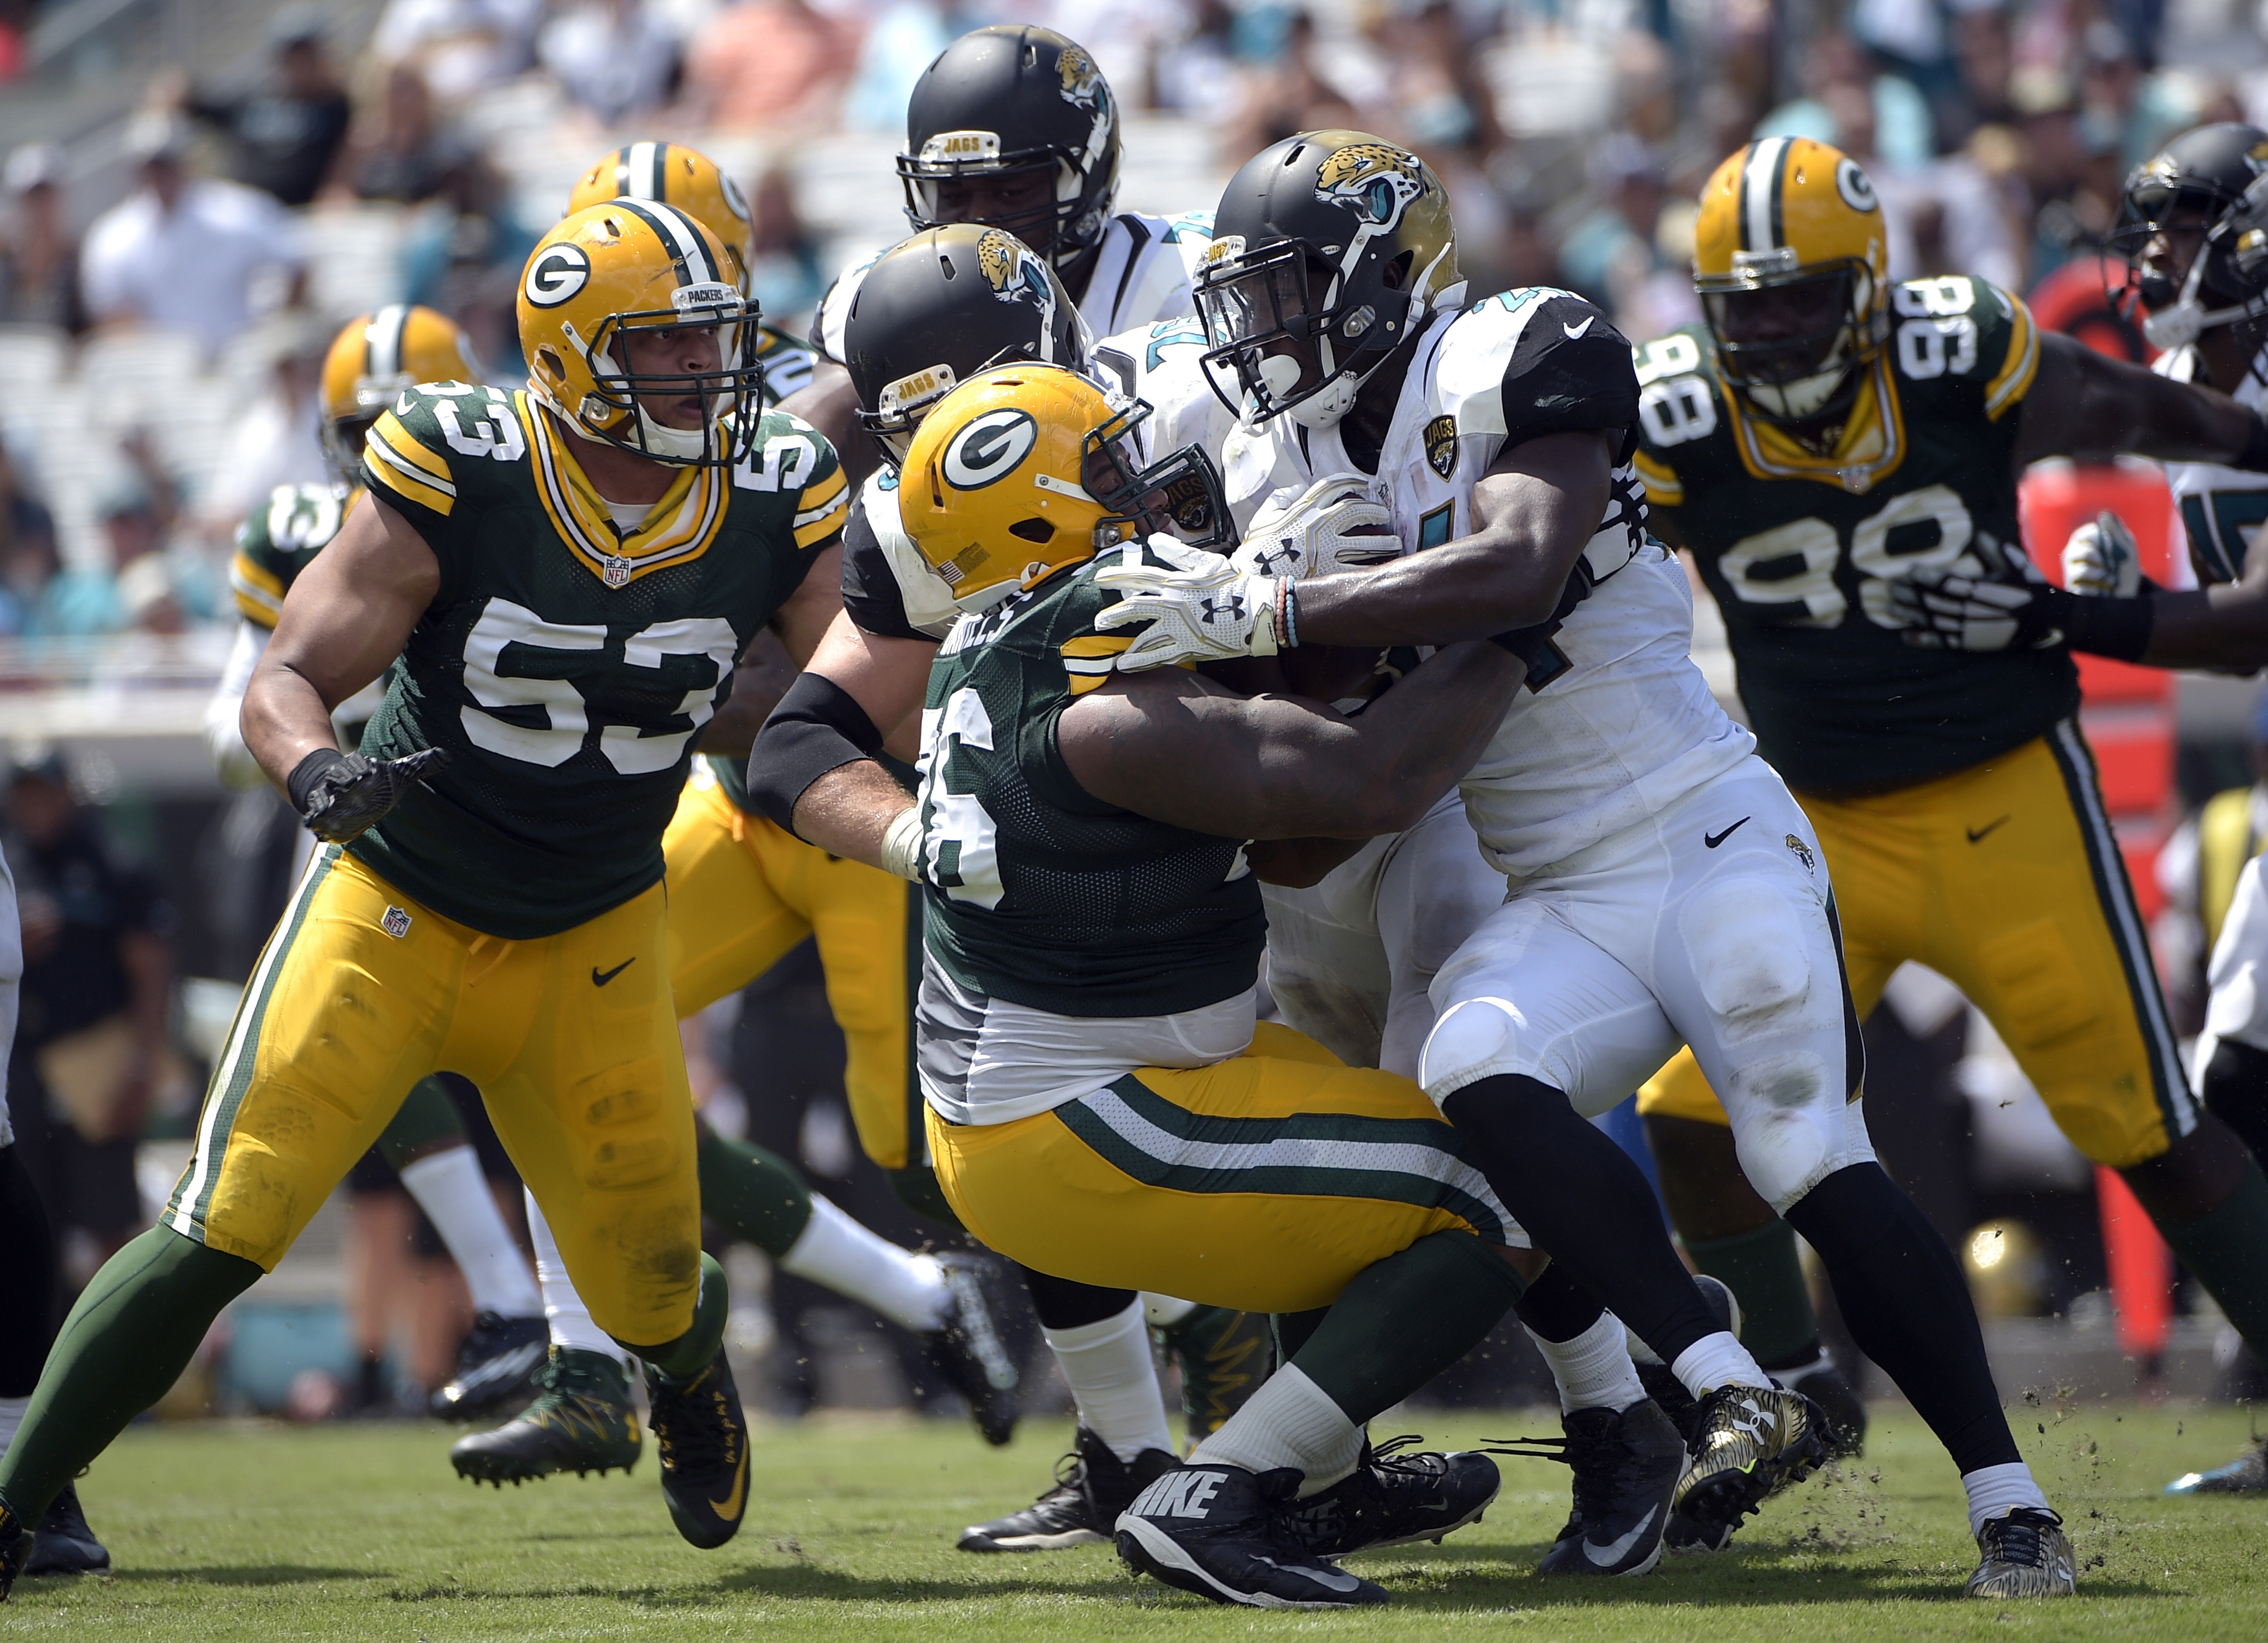 FILE - In tis Sept. 11, 2016, file photo, Jacksonville Jaguars running back T.J. Yeldon (24) is tackled by Green Bay Packers defensive end Mike Daniels (76) during the first half of an NFL football game in Jacksonville, Fla. The toughest test yet of the s